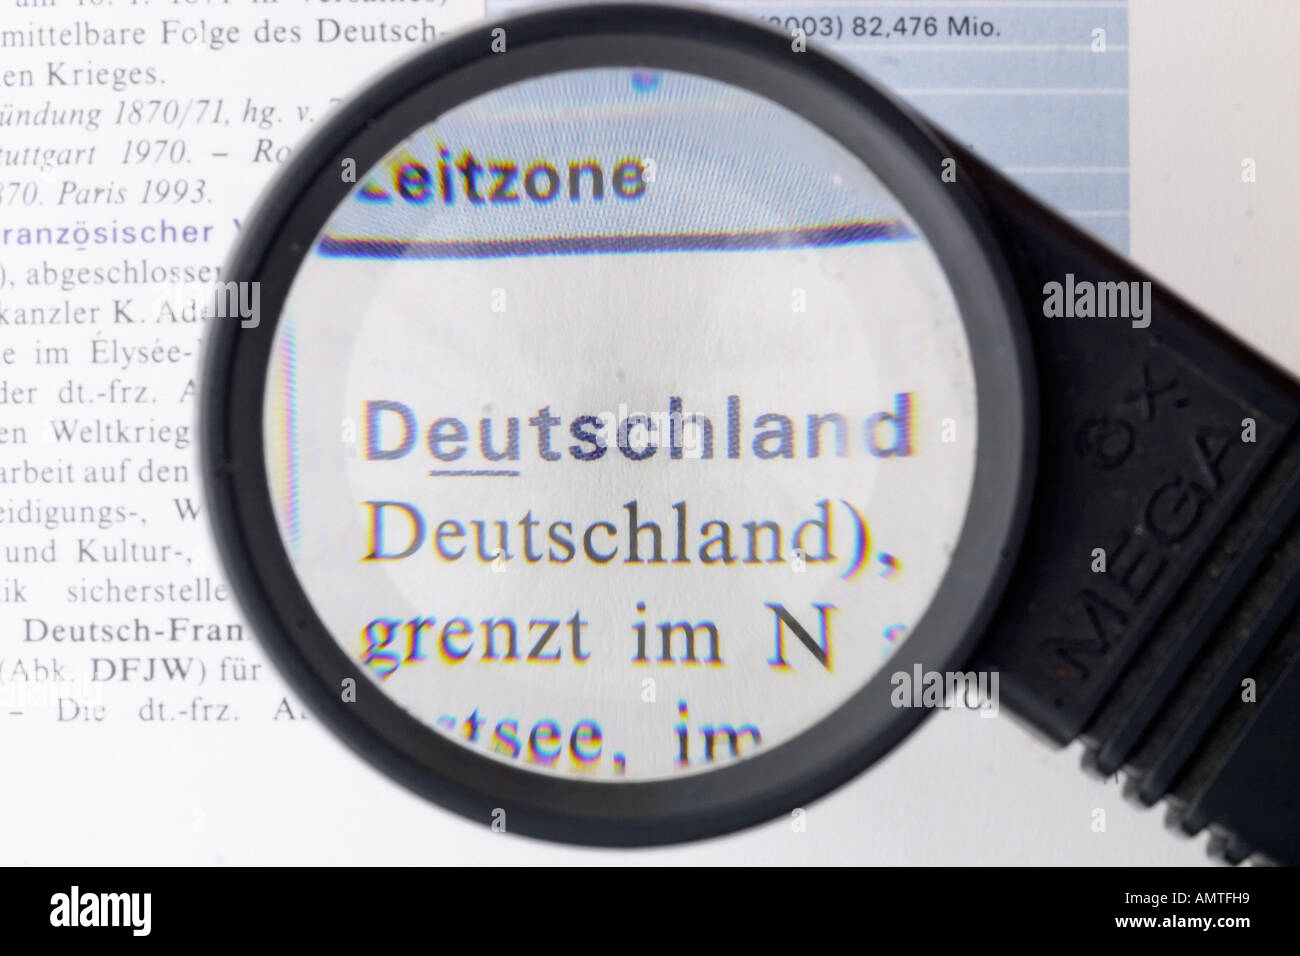 Germany, german word, magnifying glass Stock Photo: 8762200